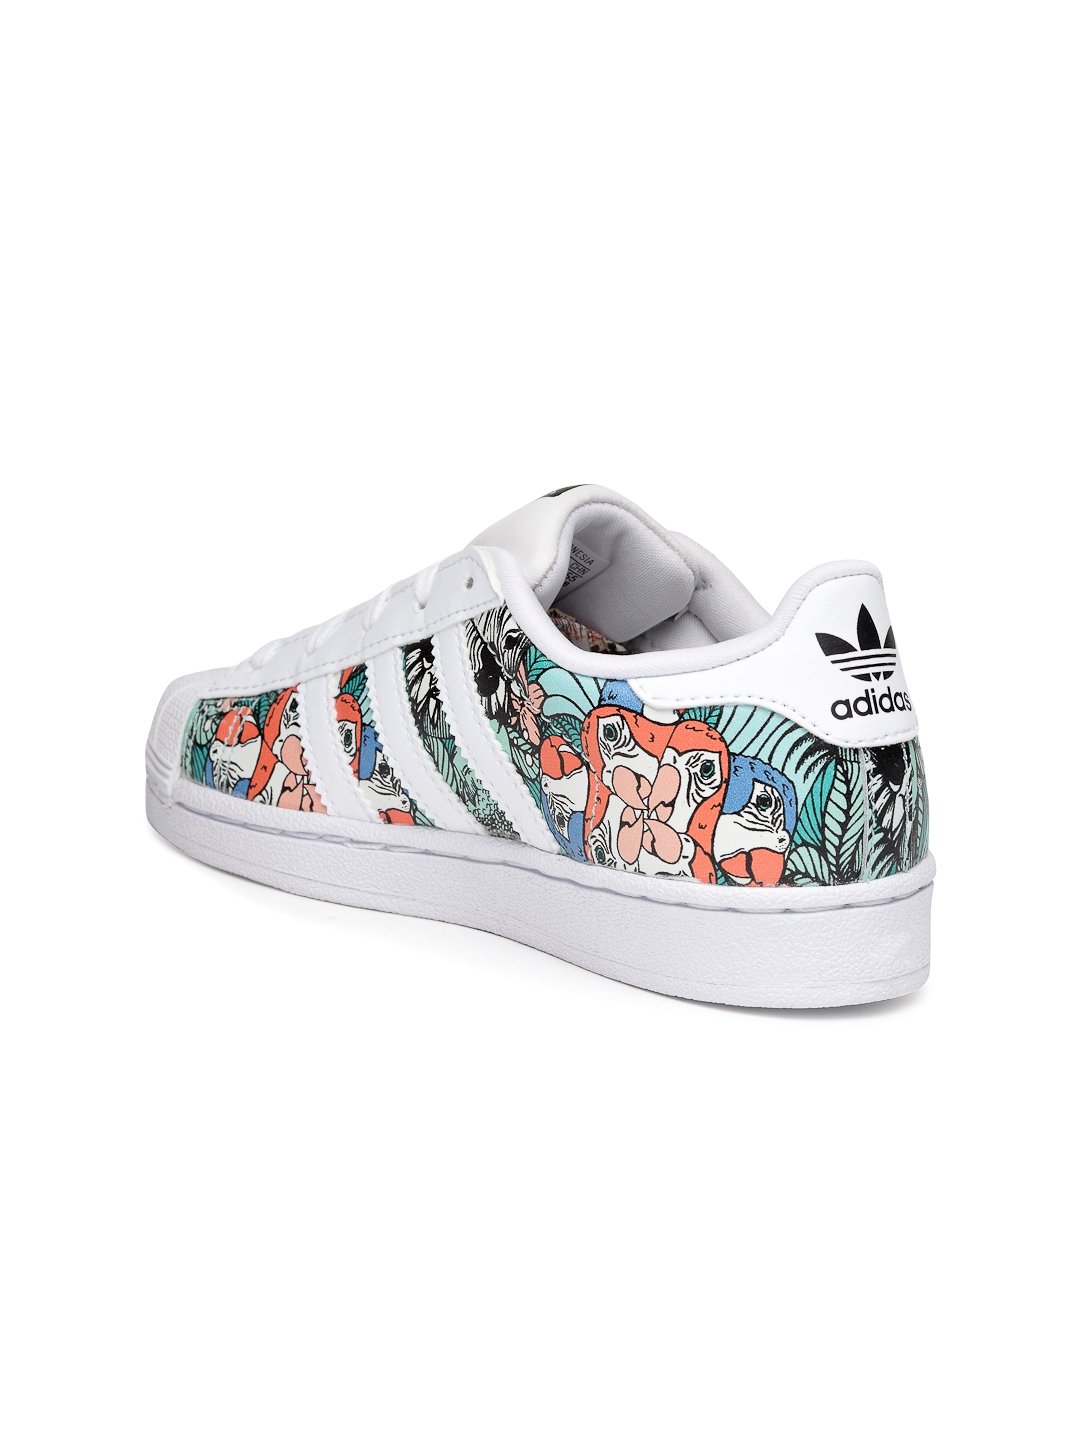 on sale 04621 1edab ADIDAS Originals Kids White   Green Superstar C Printed Sneakers